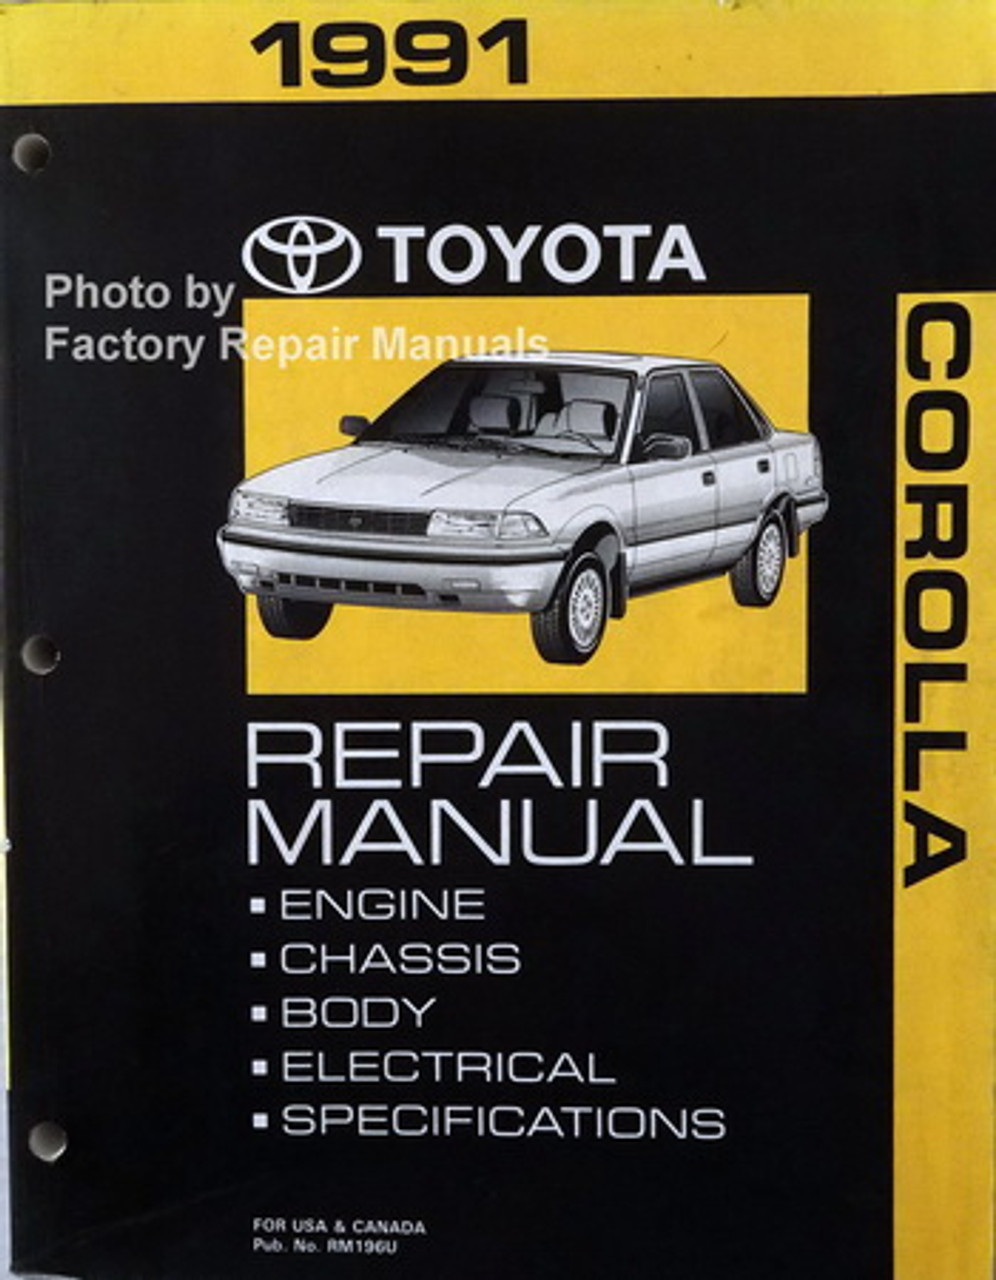 [TBQL_4184]  1991 Toyota Corolla Factory Service Manual Original Shop Repair - Factory  Repair Manuals | 1991 Toyota Corolla Dx Wiring Diagram Schematic |  | Factory Repair Manuals